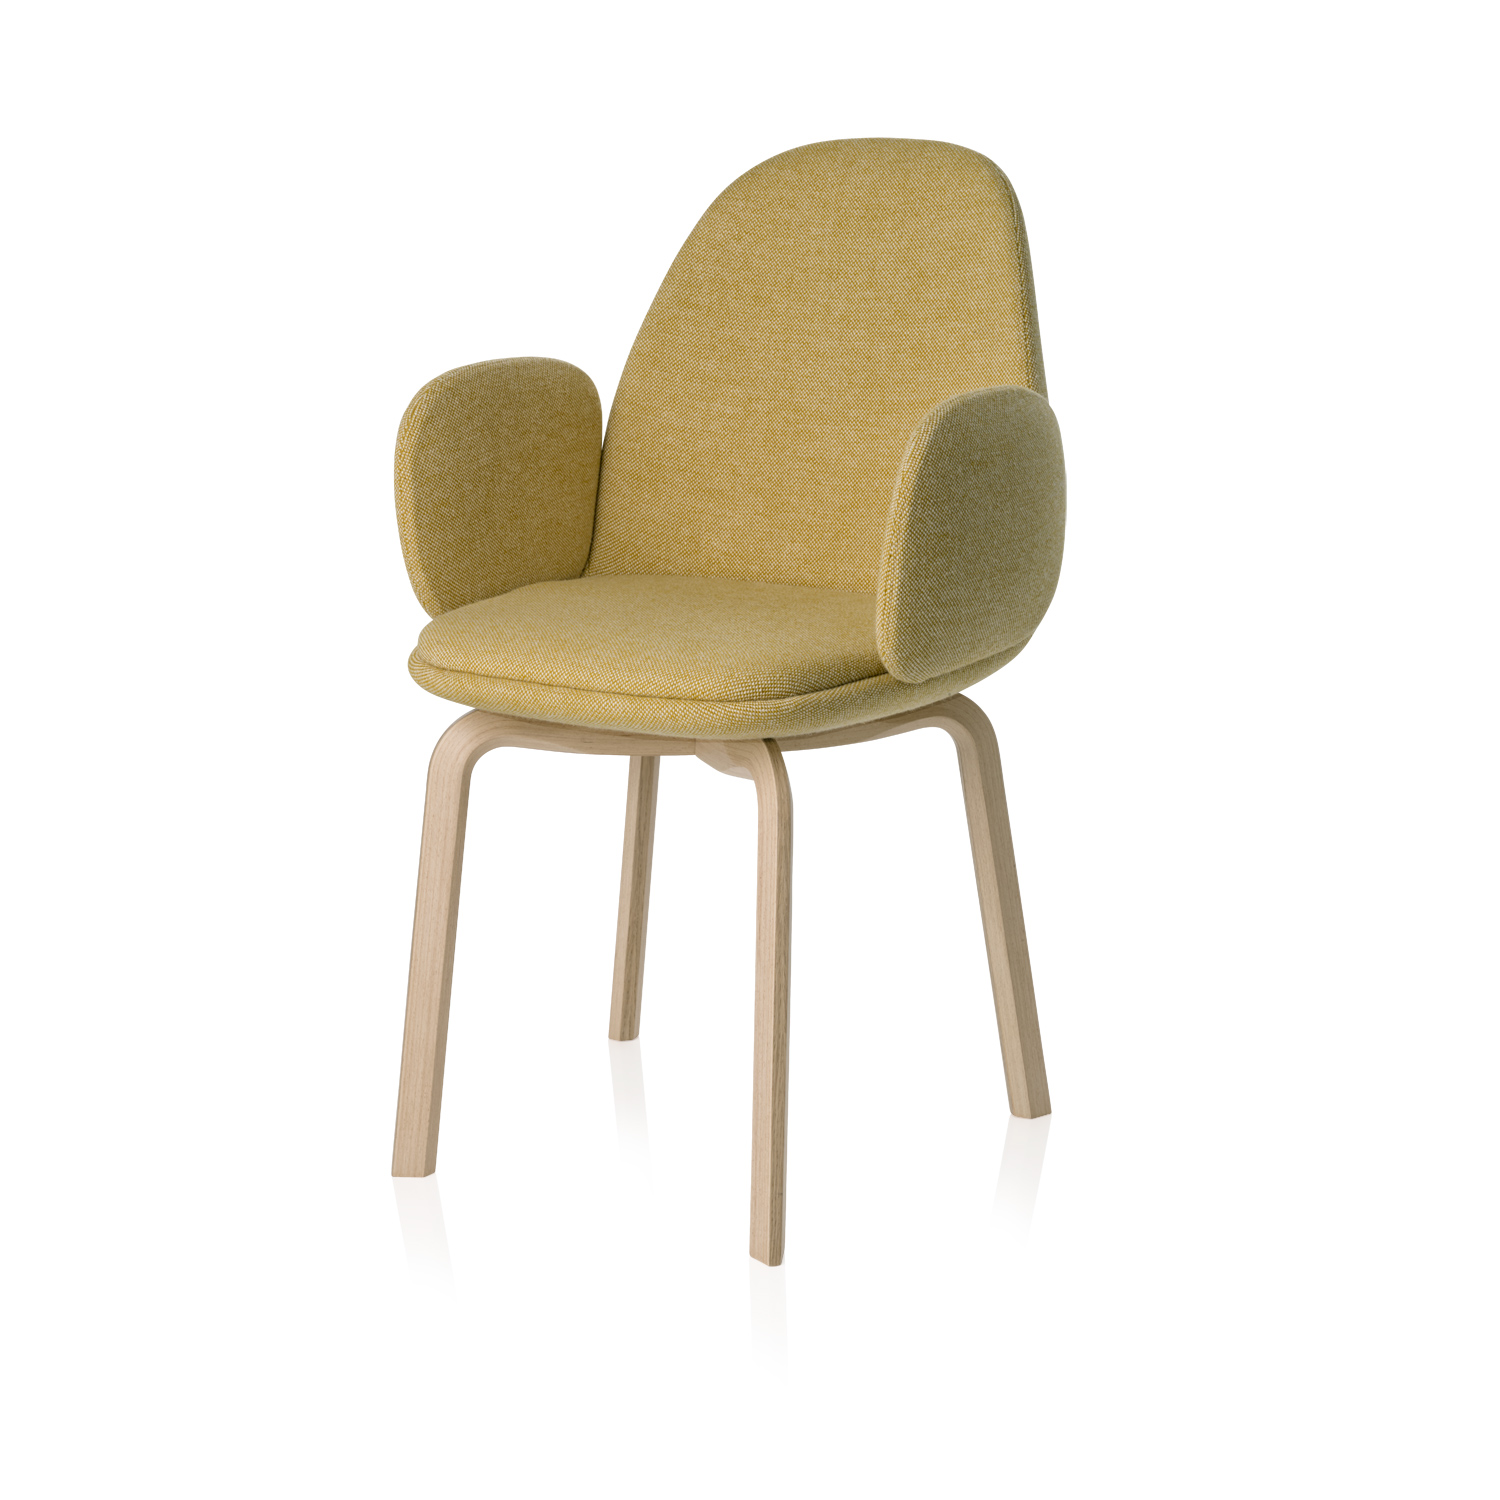 Sammen Armchair - <p>The Sammen chair is available in two varieties: With or without armrests. The shell and seat cushion come fully upholstered in 6 different designer colours. </p>